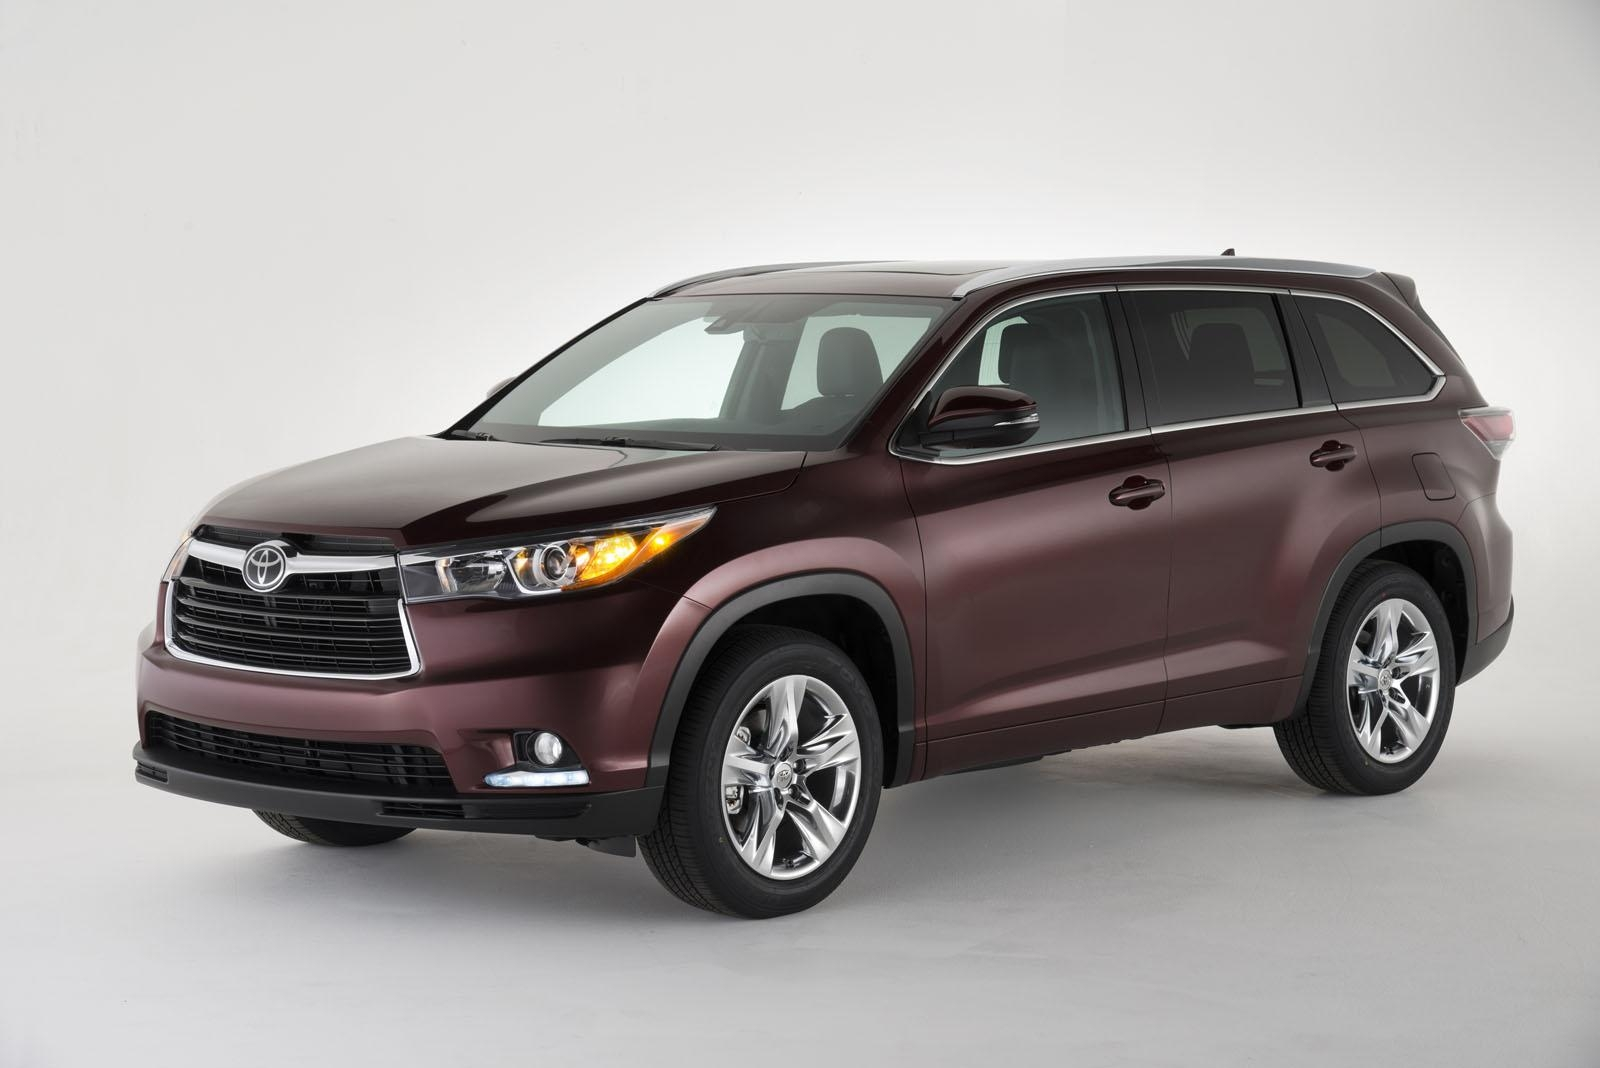 Toyota Highlander 2.7 2014 photo - 2